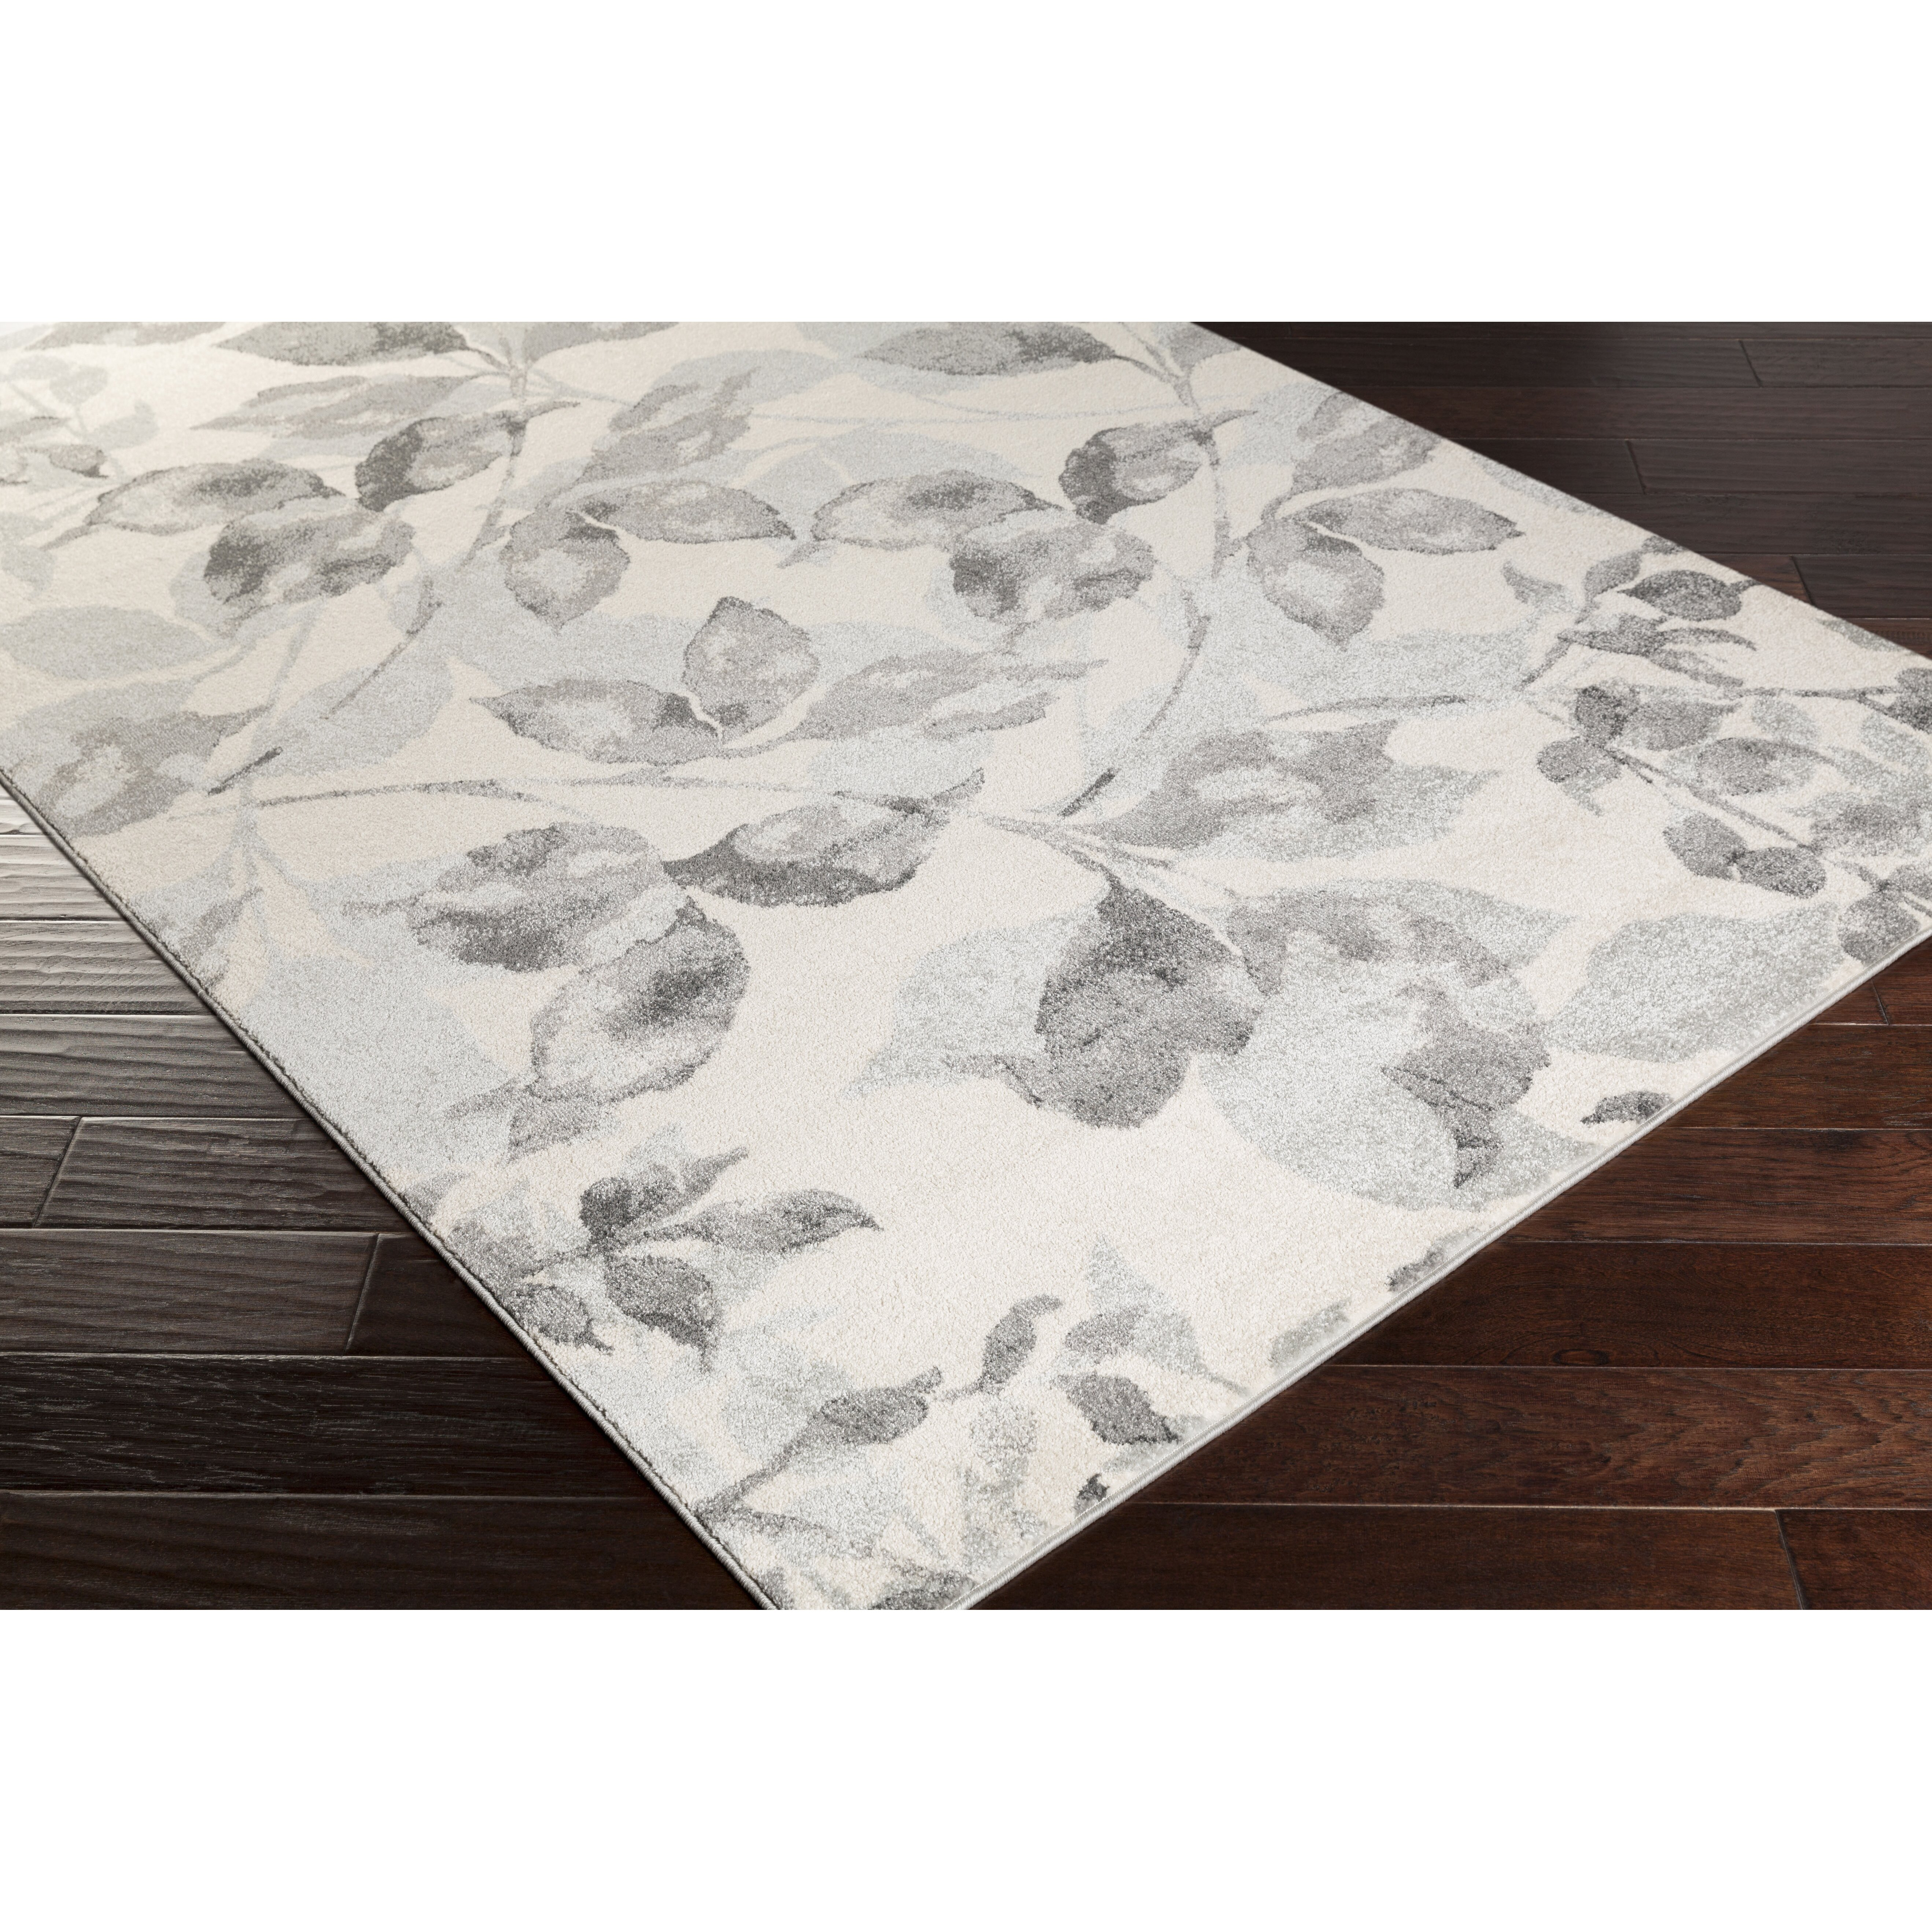 Surya Aberdine Charcoal Amp Light Gray Floral Area Rug